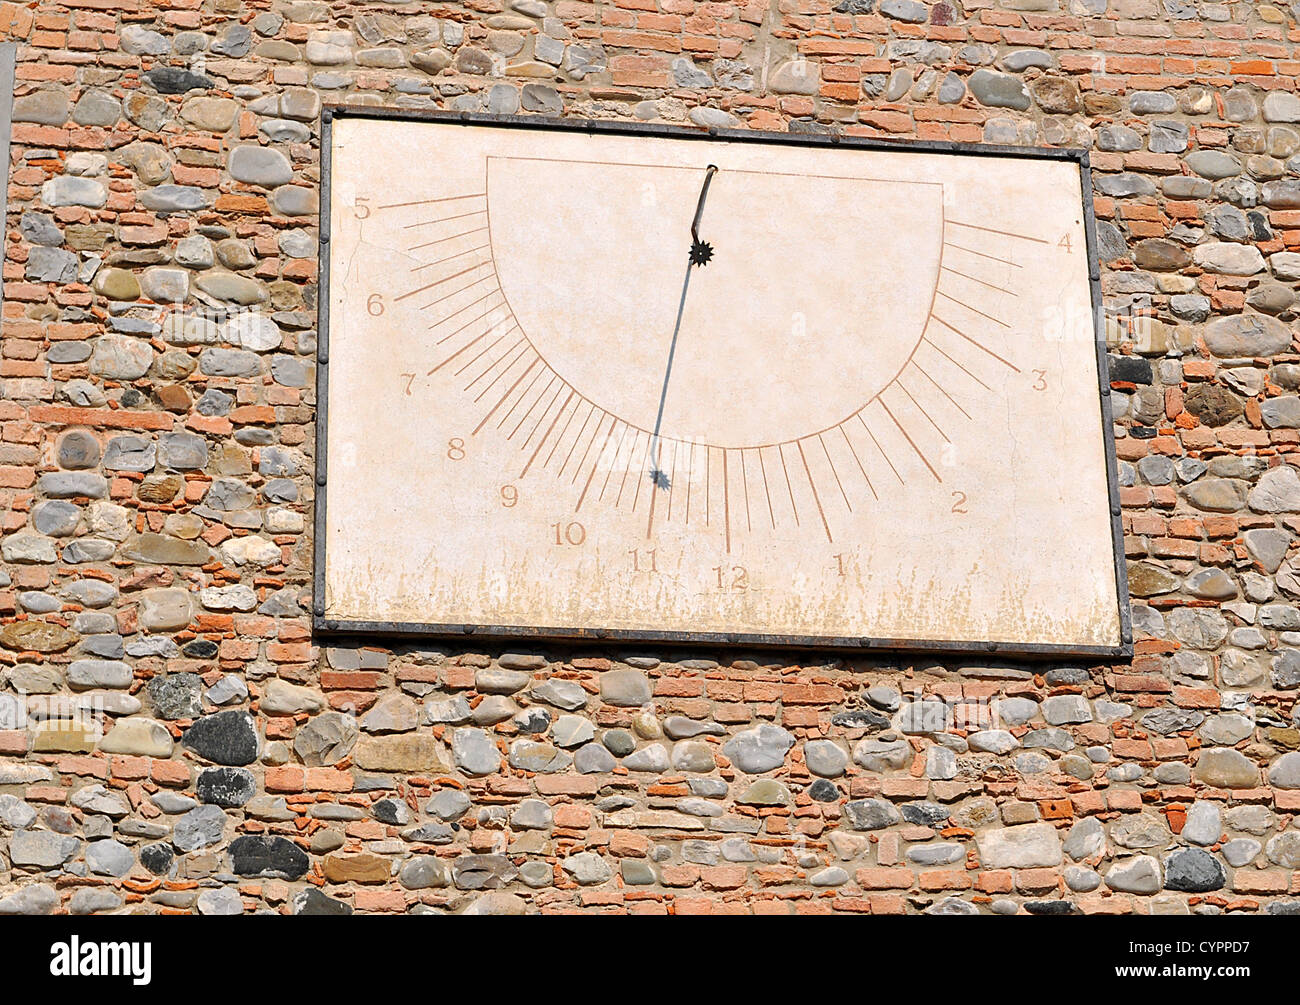 old sundial on a red bricks wall - Stock Image